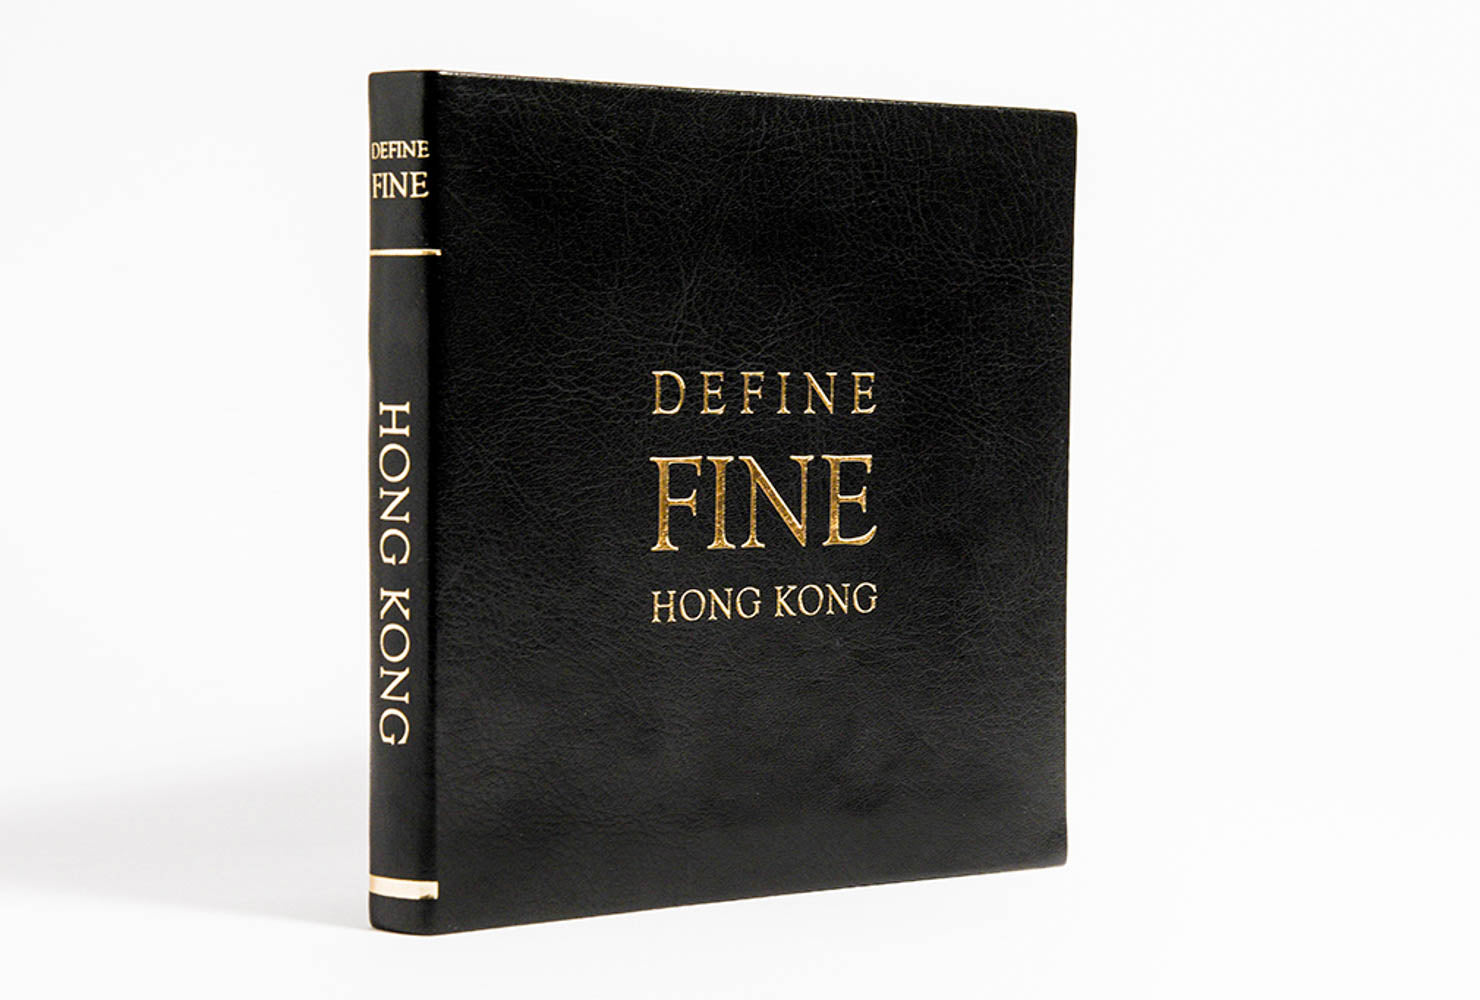 DEFINE FINE HONG KONG TRAVEL GUIDE